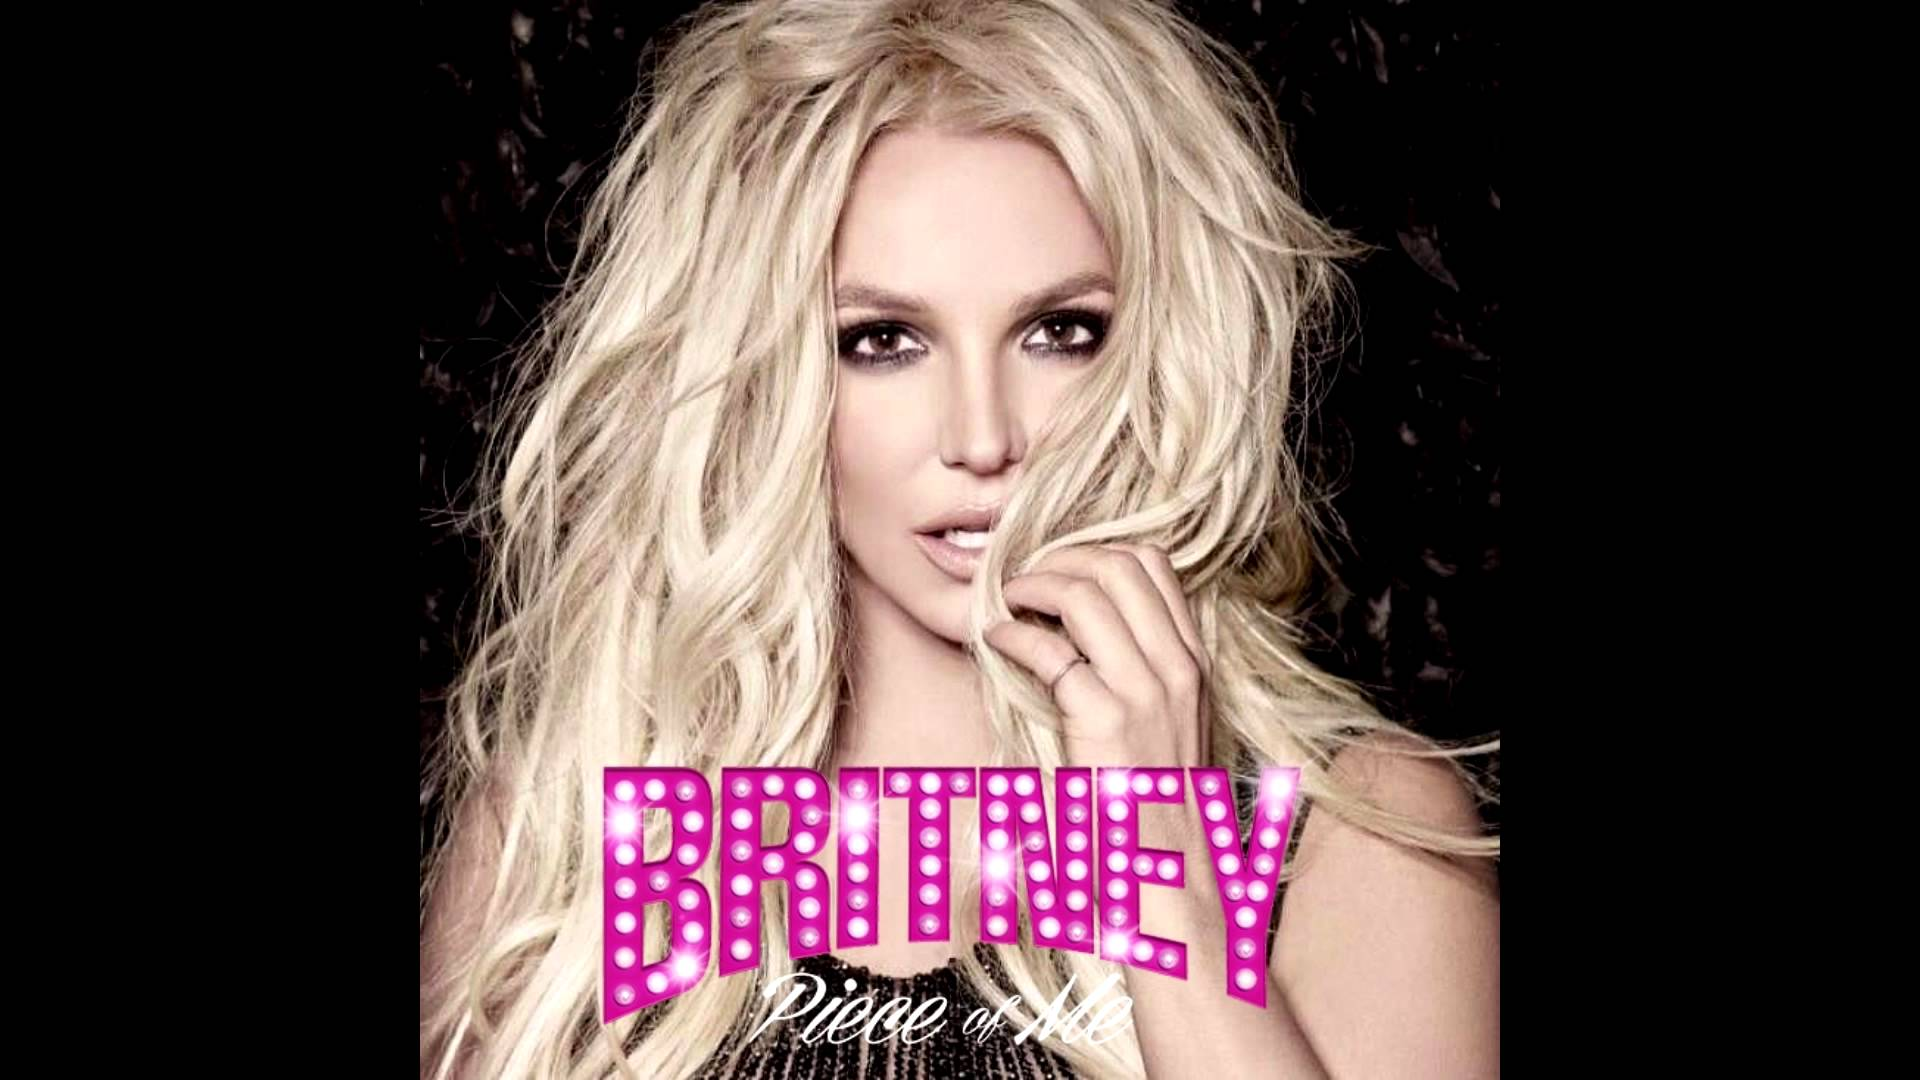 Are you ready for a bit of Britney? She's coming to Dublin...